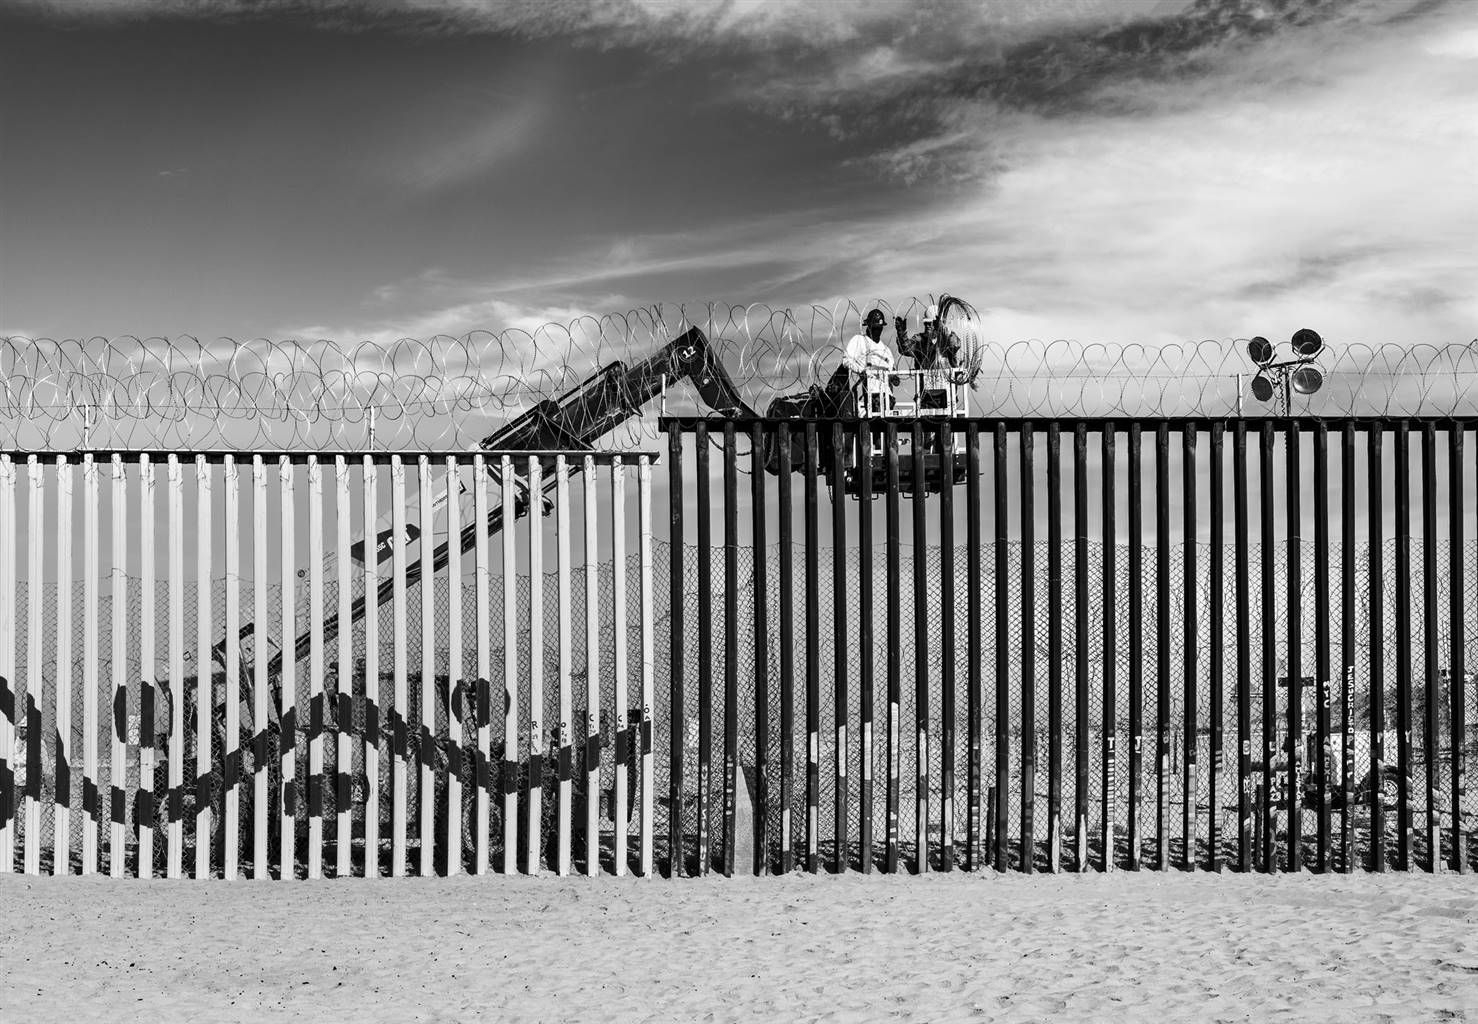 Ada Luisa Trillo, Reinforcing The Wall, Archival Pigment Print, 34.5'' x 50'' image